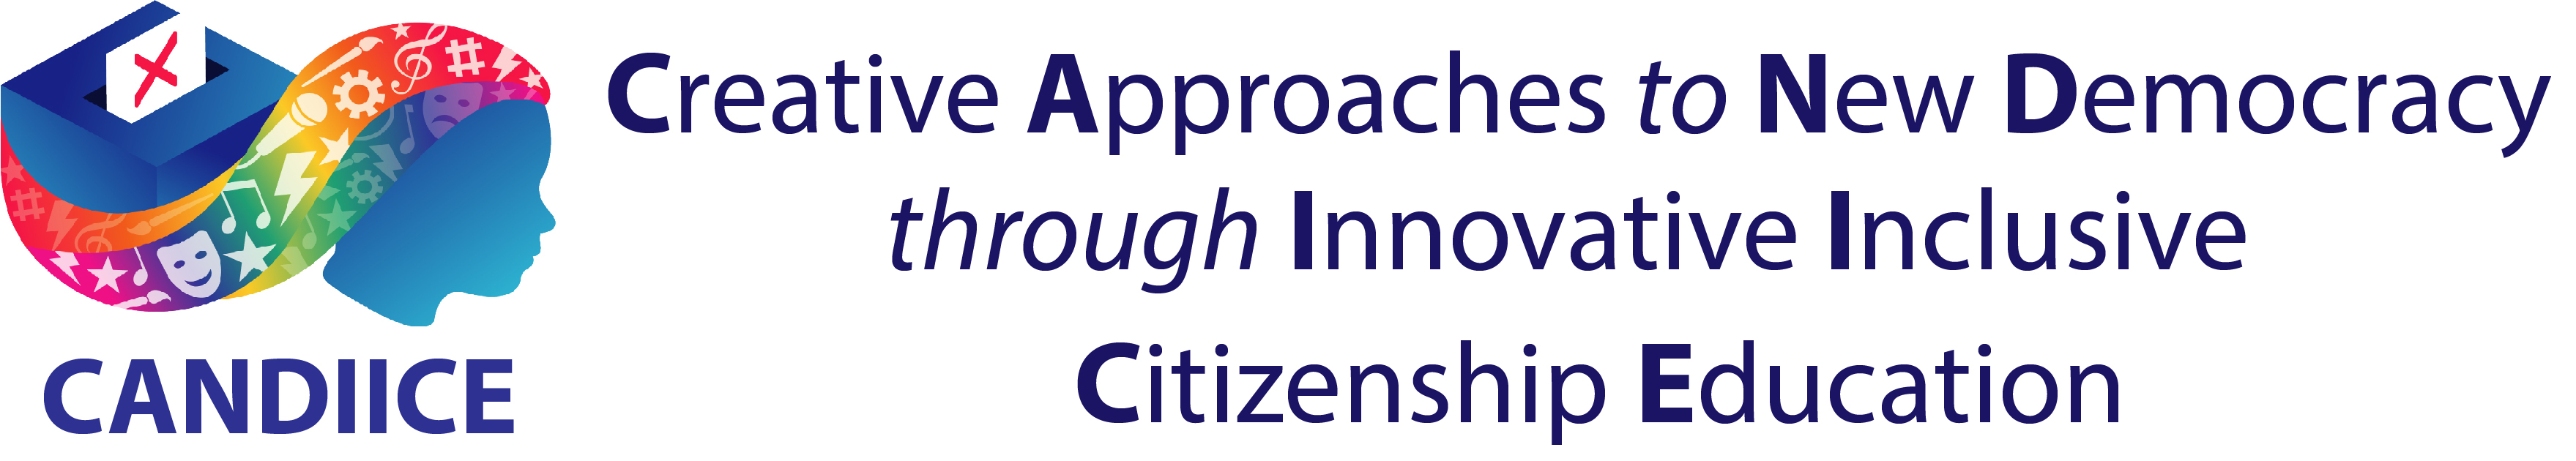 CANDIICE - Creative Approaches to New Democracy through Innovative Inclusive Citizenship Education